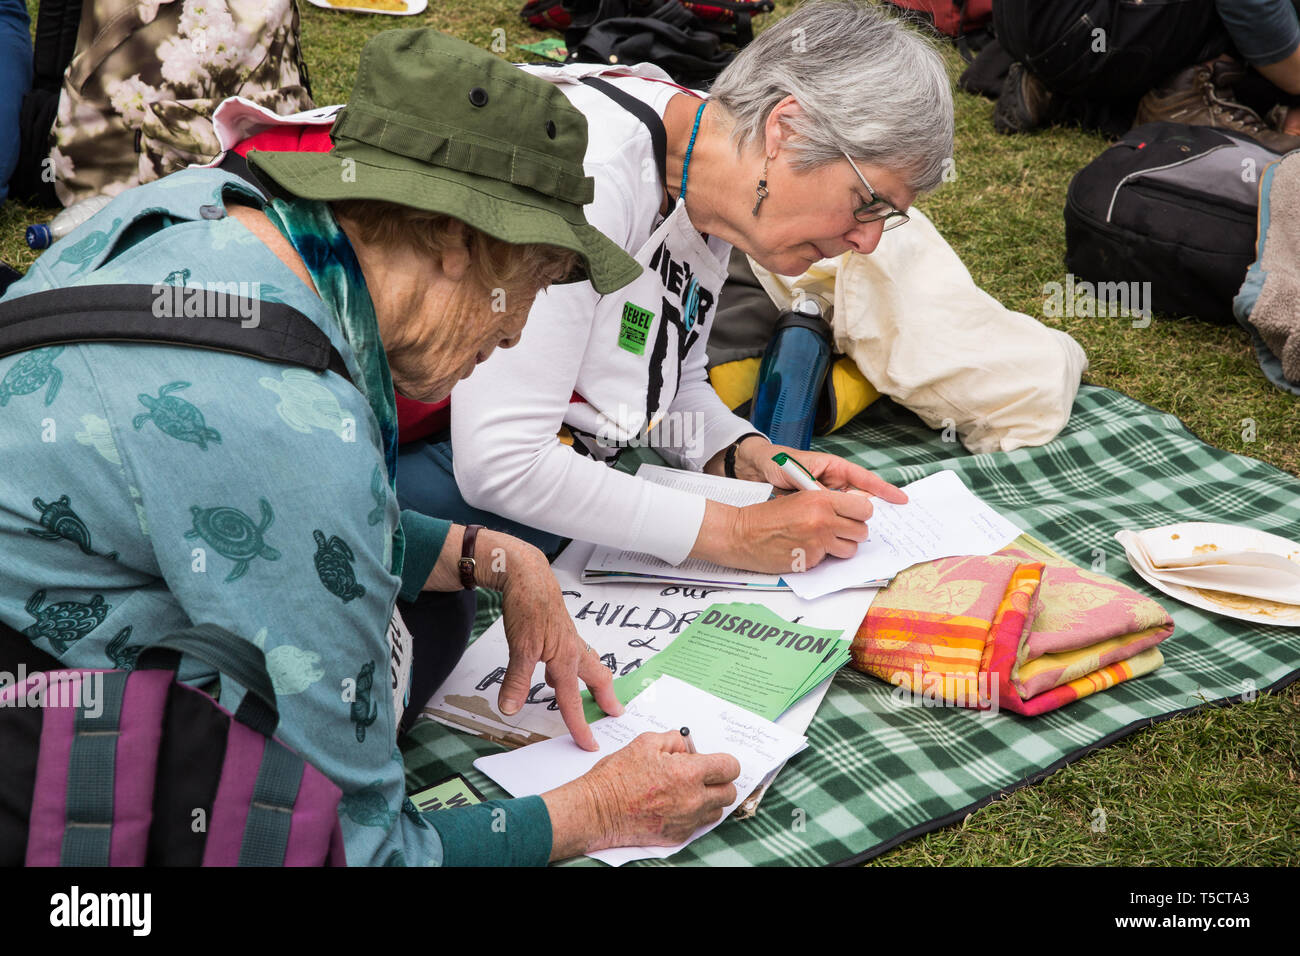 London, UK. 23rd April 2019. Climate change activists from Extinction Rebellion attending an assembly in Parliament Square write letters to their Members of Parliament requesting a meeting to discuss the issue of climate change. Activists later tried to deliver their letters to Parliament, but all but ten were prevented from doing so by the Metropolitan Police. Credit: Mark Kerrison/Alamy Live News - Stock Image